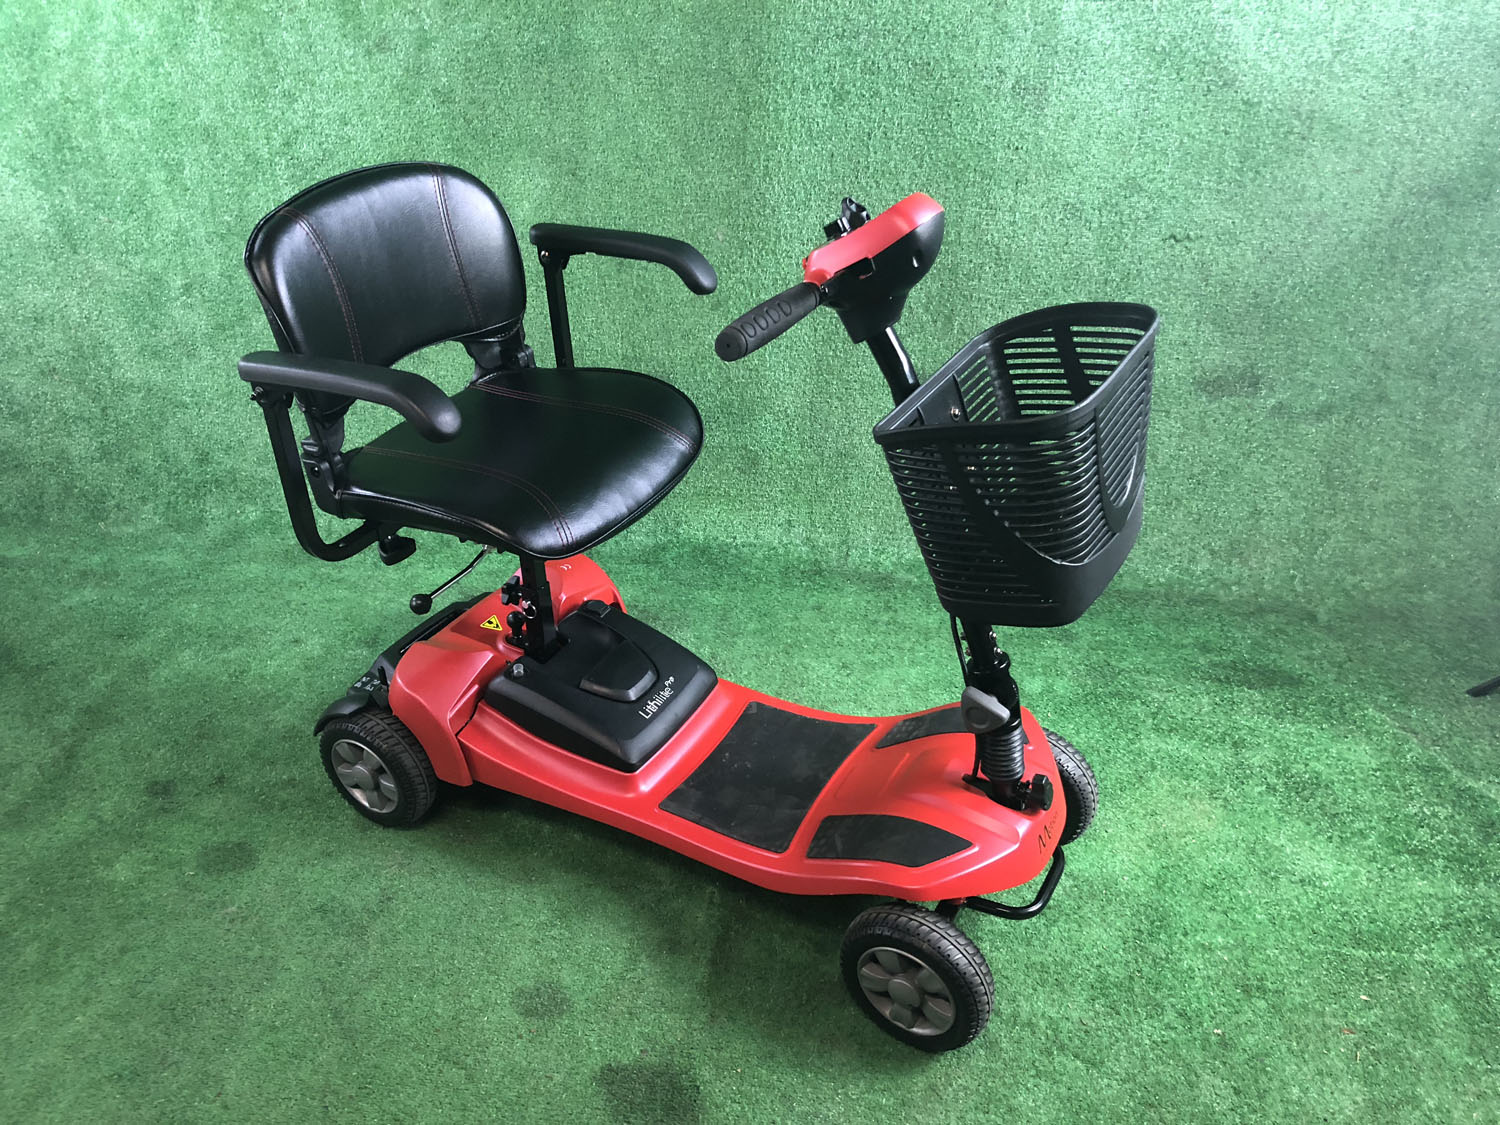 New Motion Healthcare Lithilite Pro 4mph Transportable Boot Scooter 26 mile range